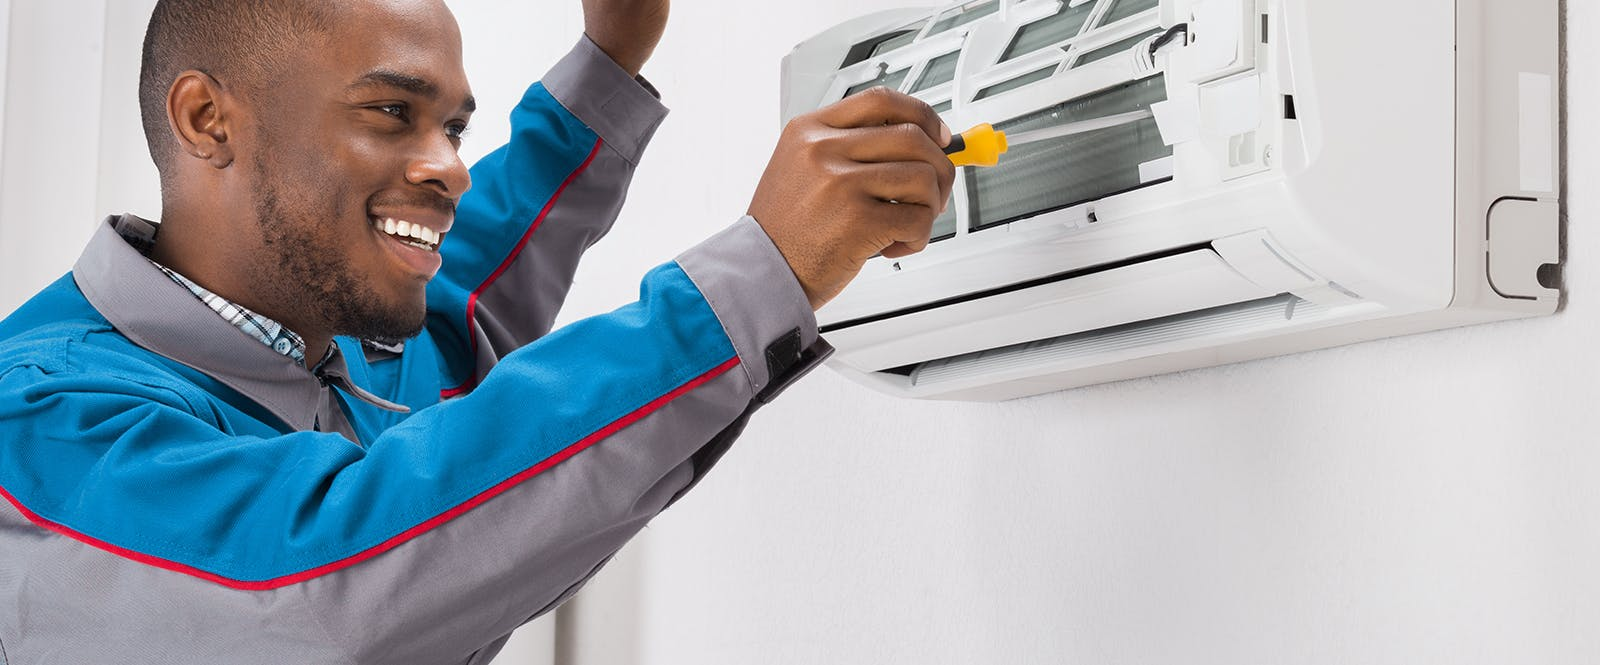 About our AC repair service